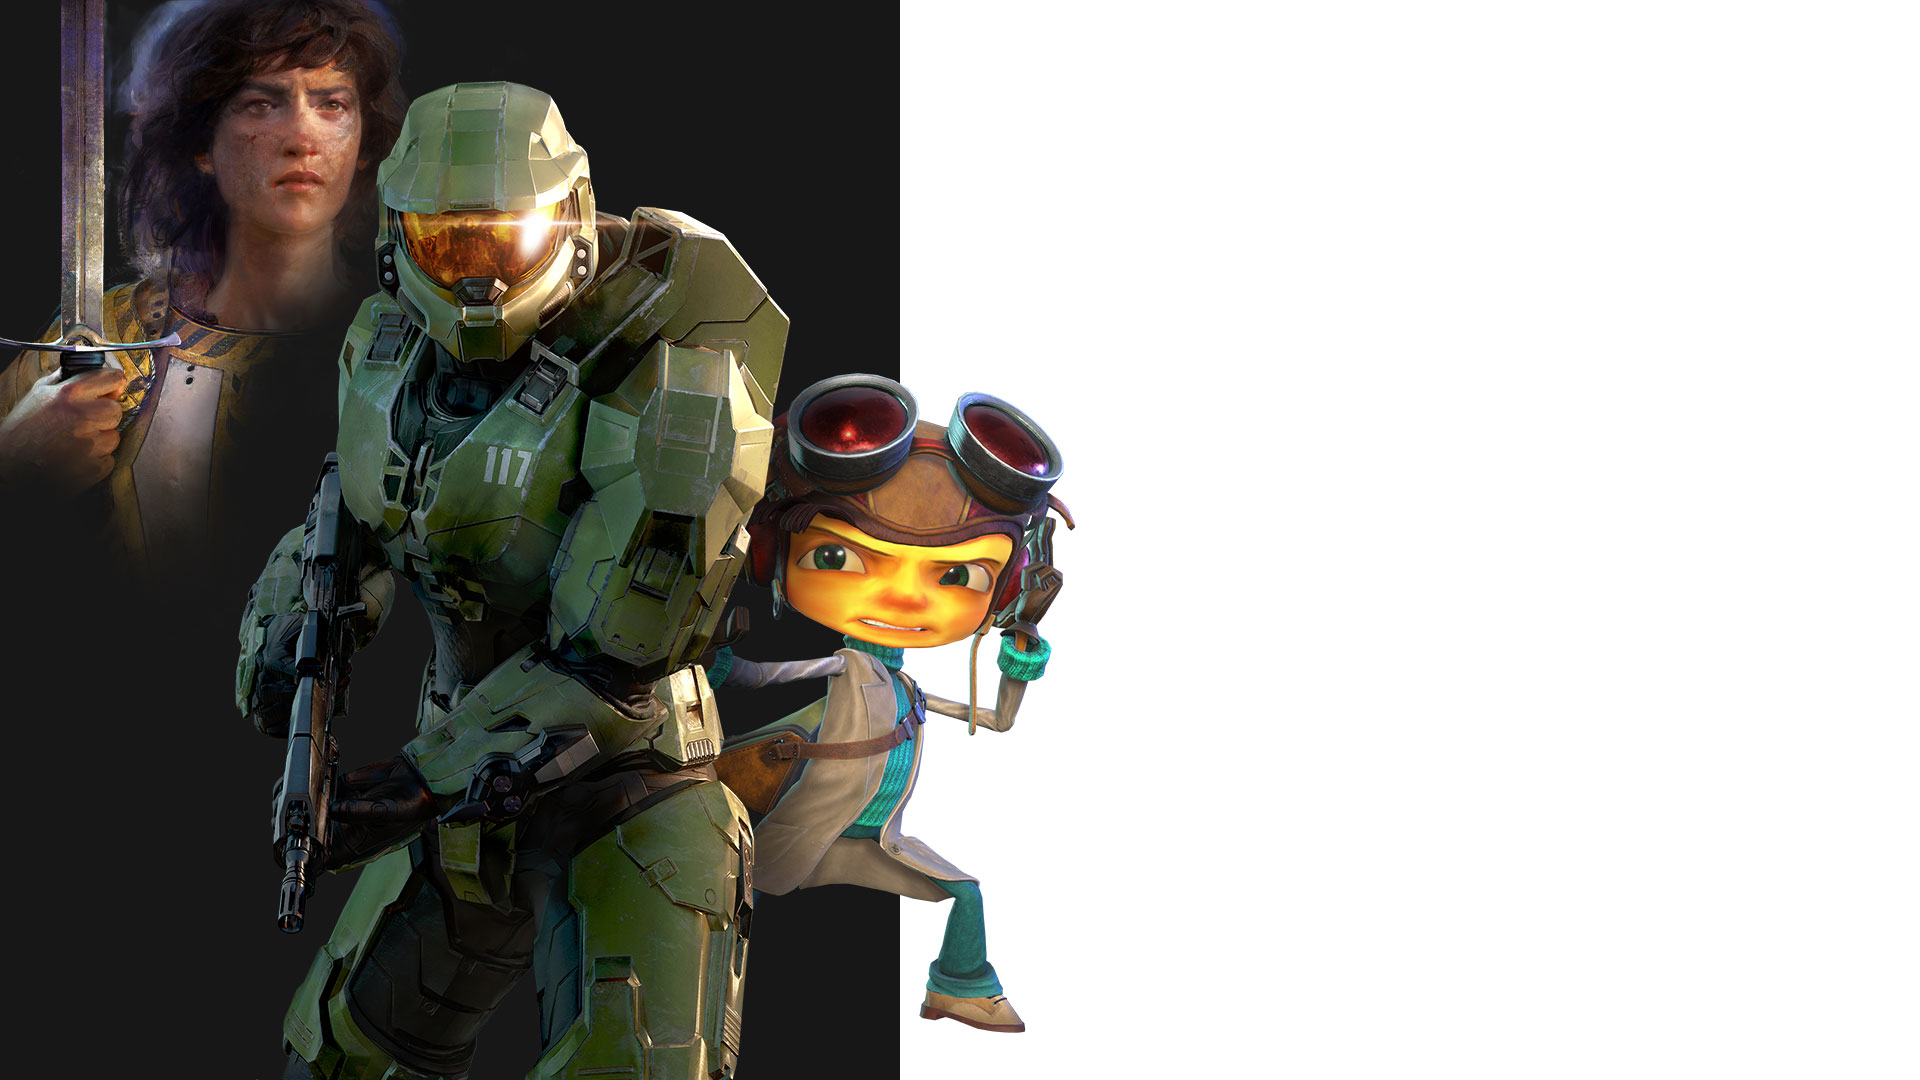 A collage of characters from Age of Empires IV, Halo Infinite and Psychonauts 2